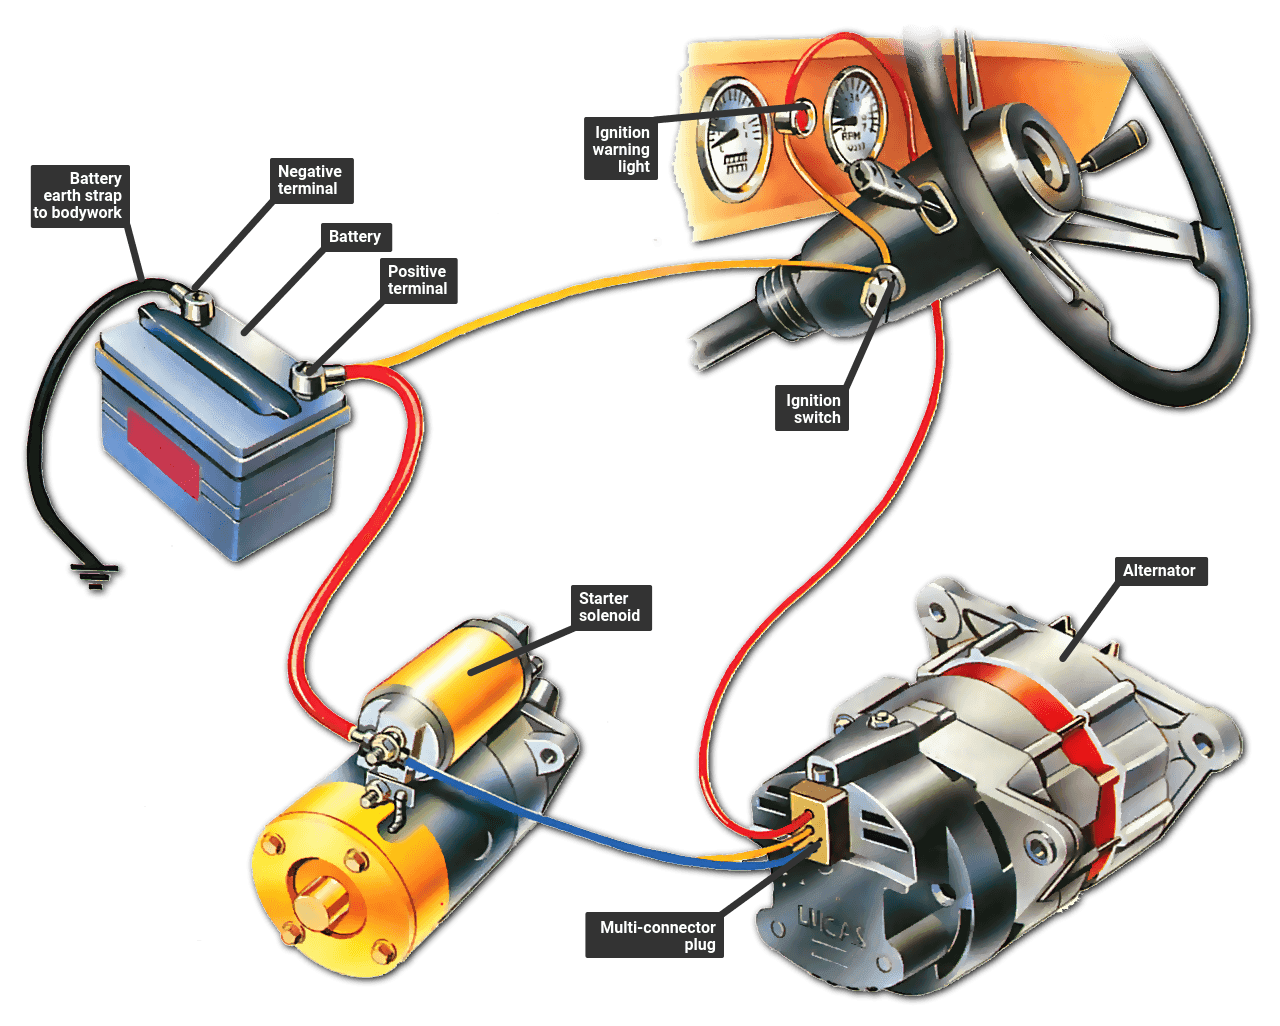 Troubleshooting The Ignition Warning Light How A Car Works 72 Chevy Alternator Wiring Diagram